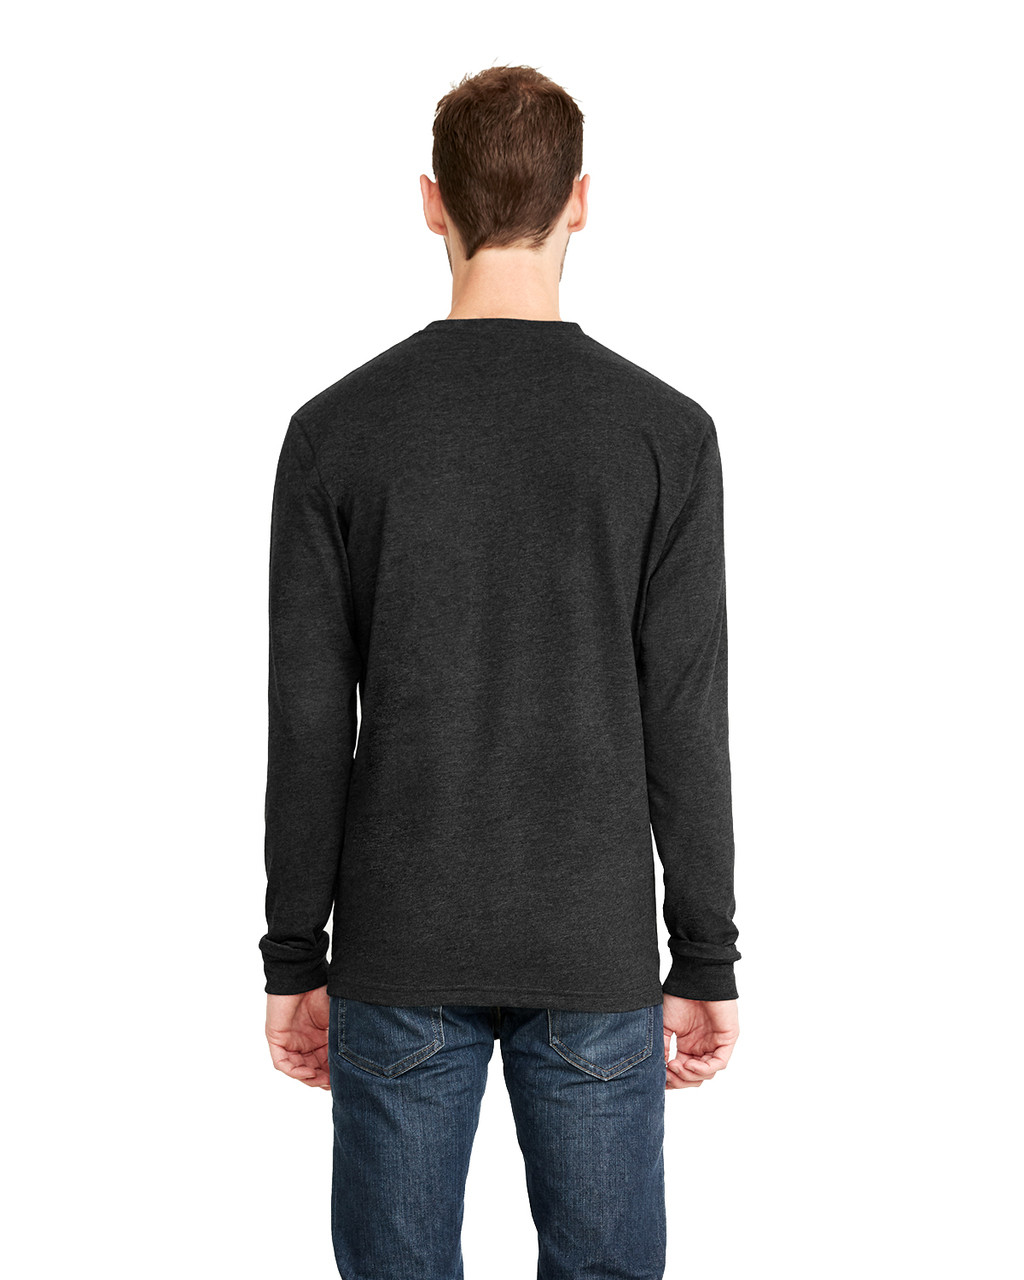 Black, Back - 6411 Next Level Unisex Sueded Long-Sleeve Crew Shirt | Blankclothing.ca